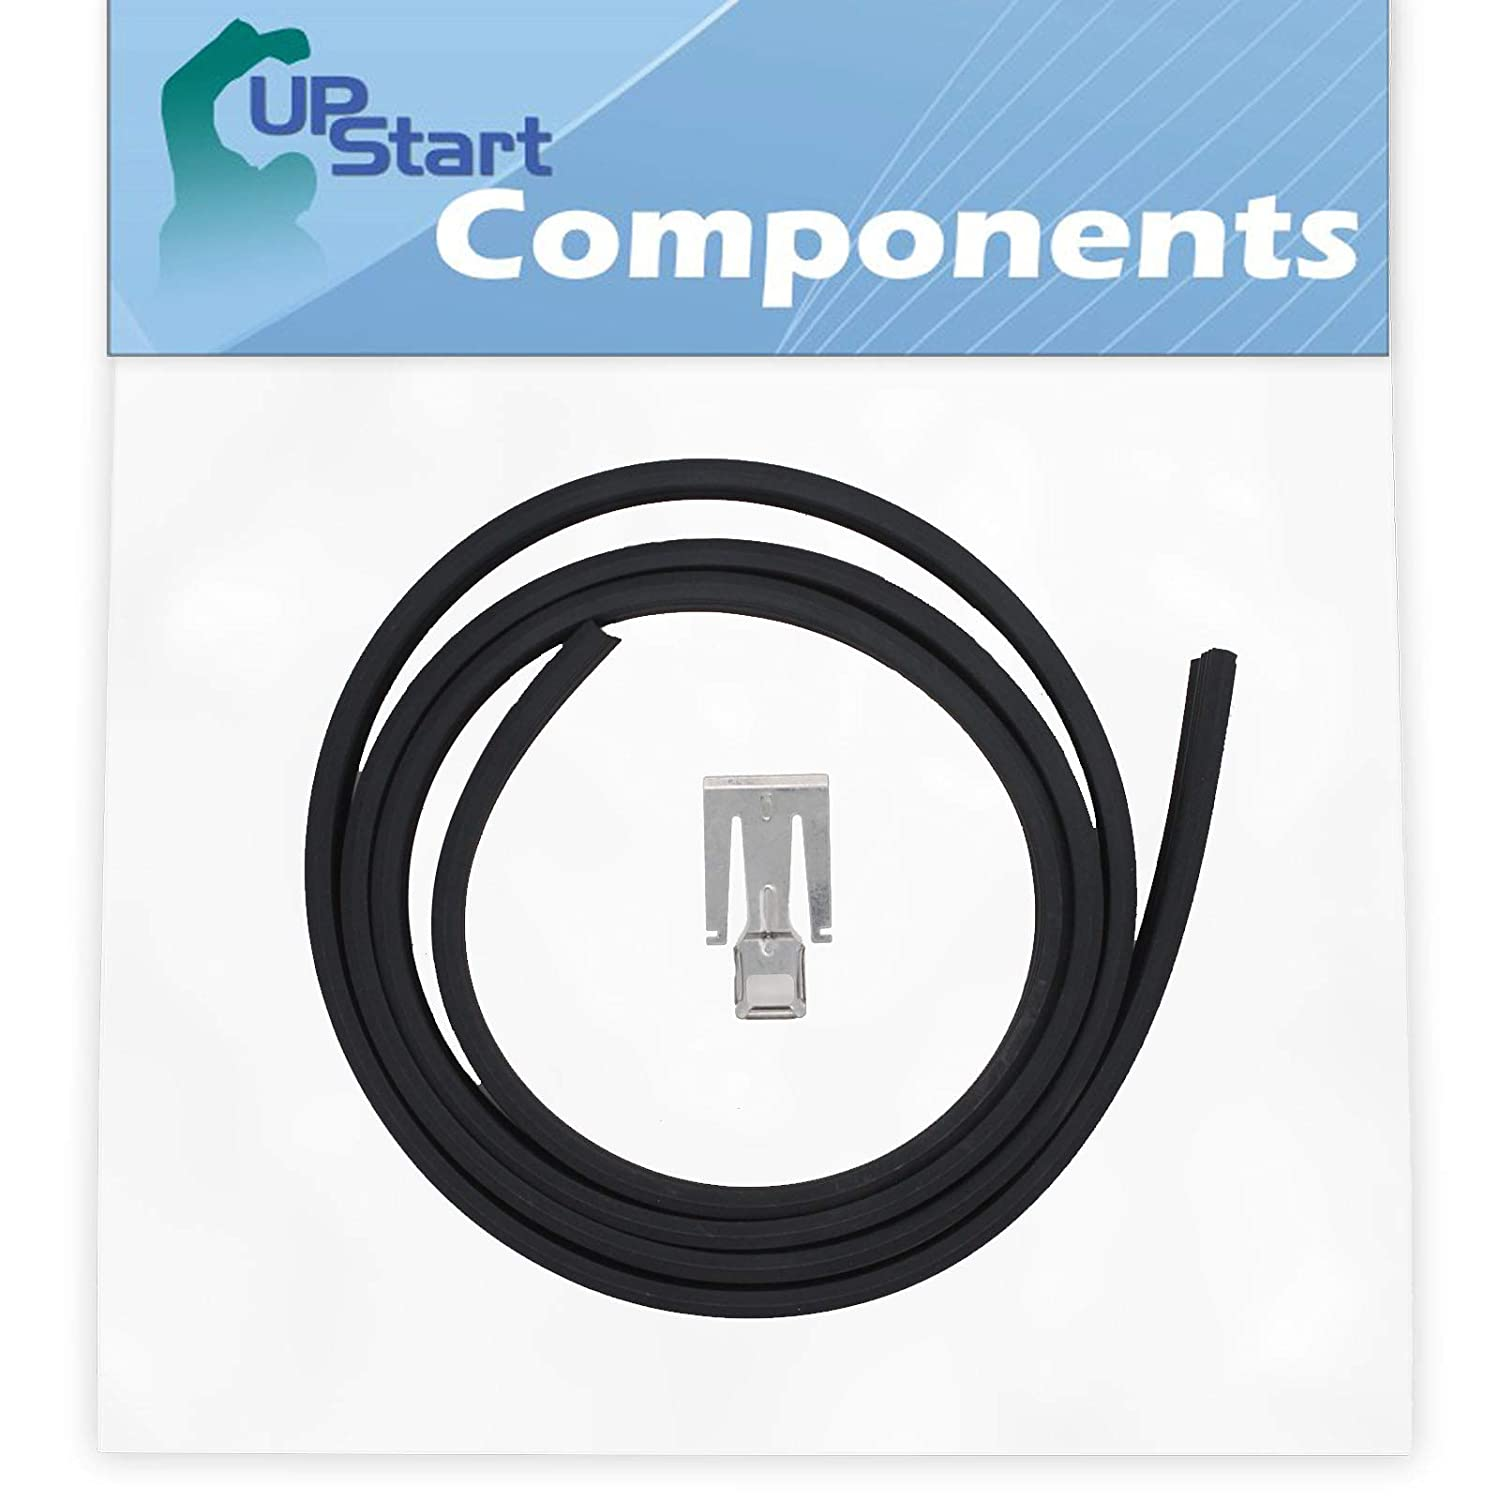 Compatible with W10542314 Door Seal UpStart Components Brand W10542314 Dishwasher Door Gasket Replacement for Whirlpool GU2275XTVY0 Dishwasher